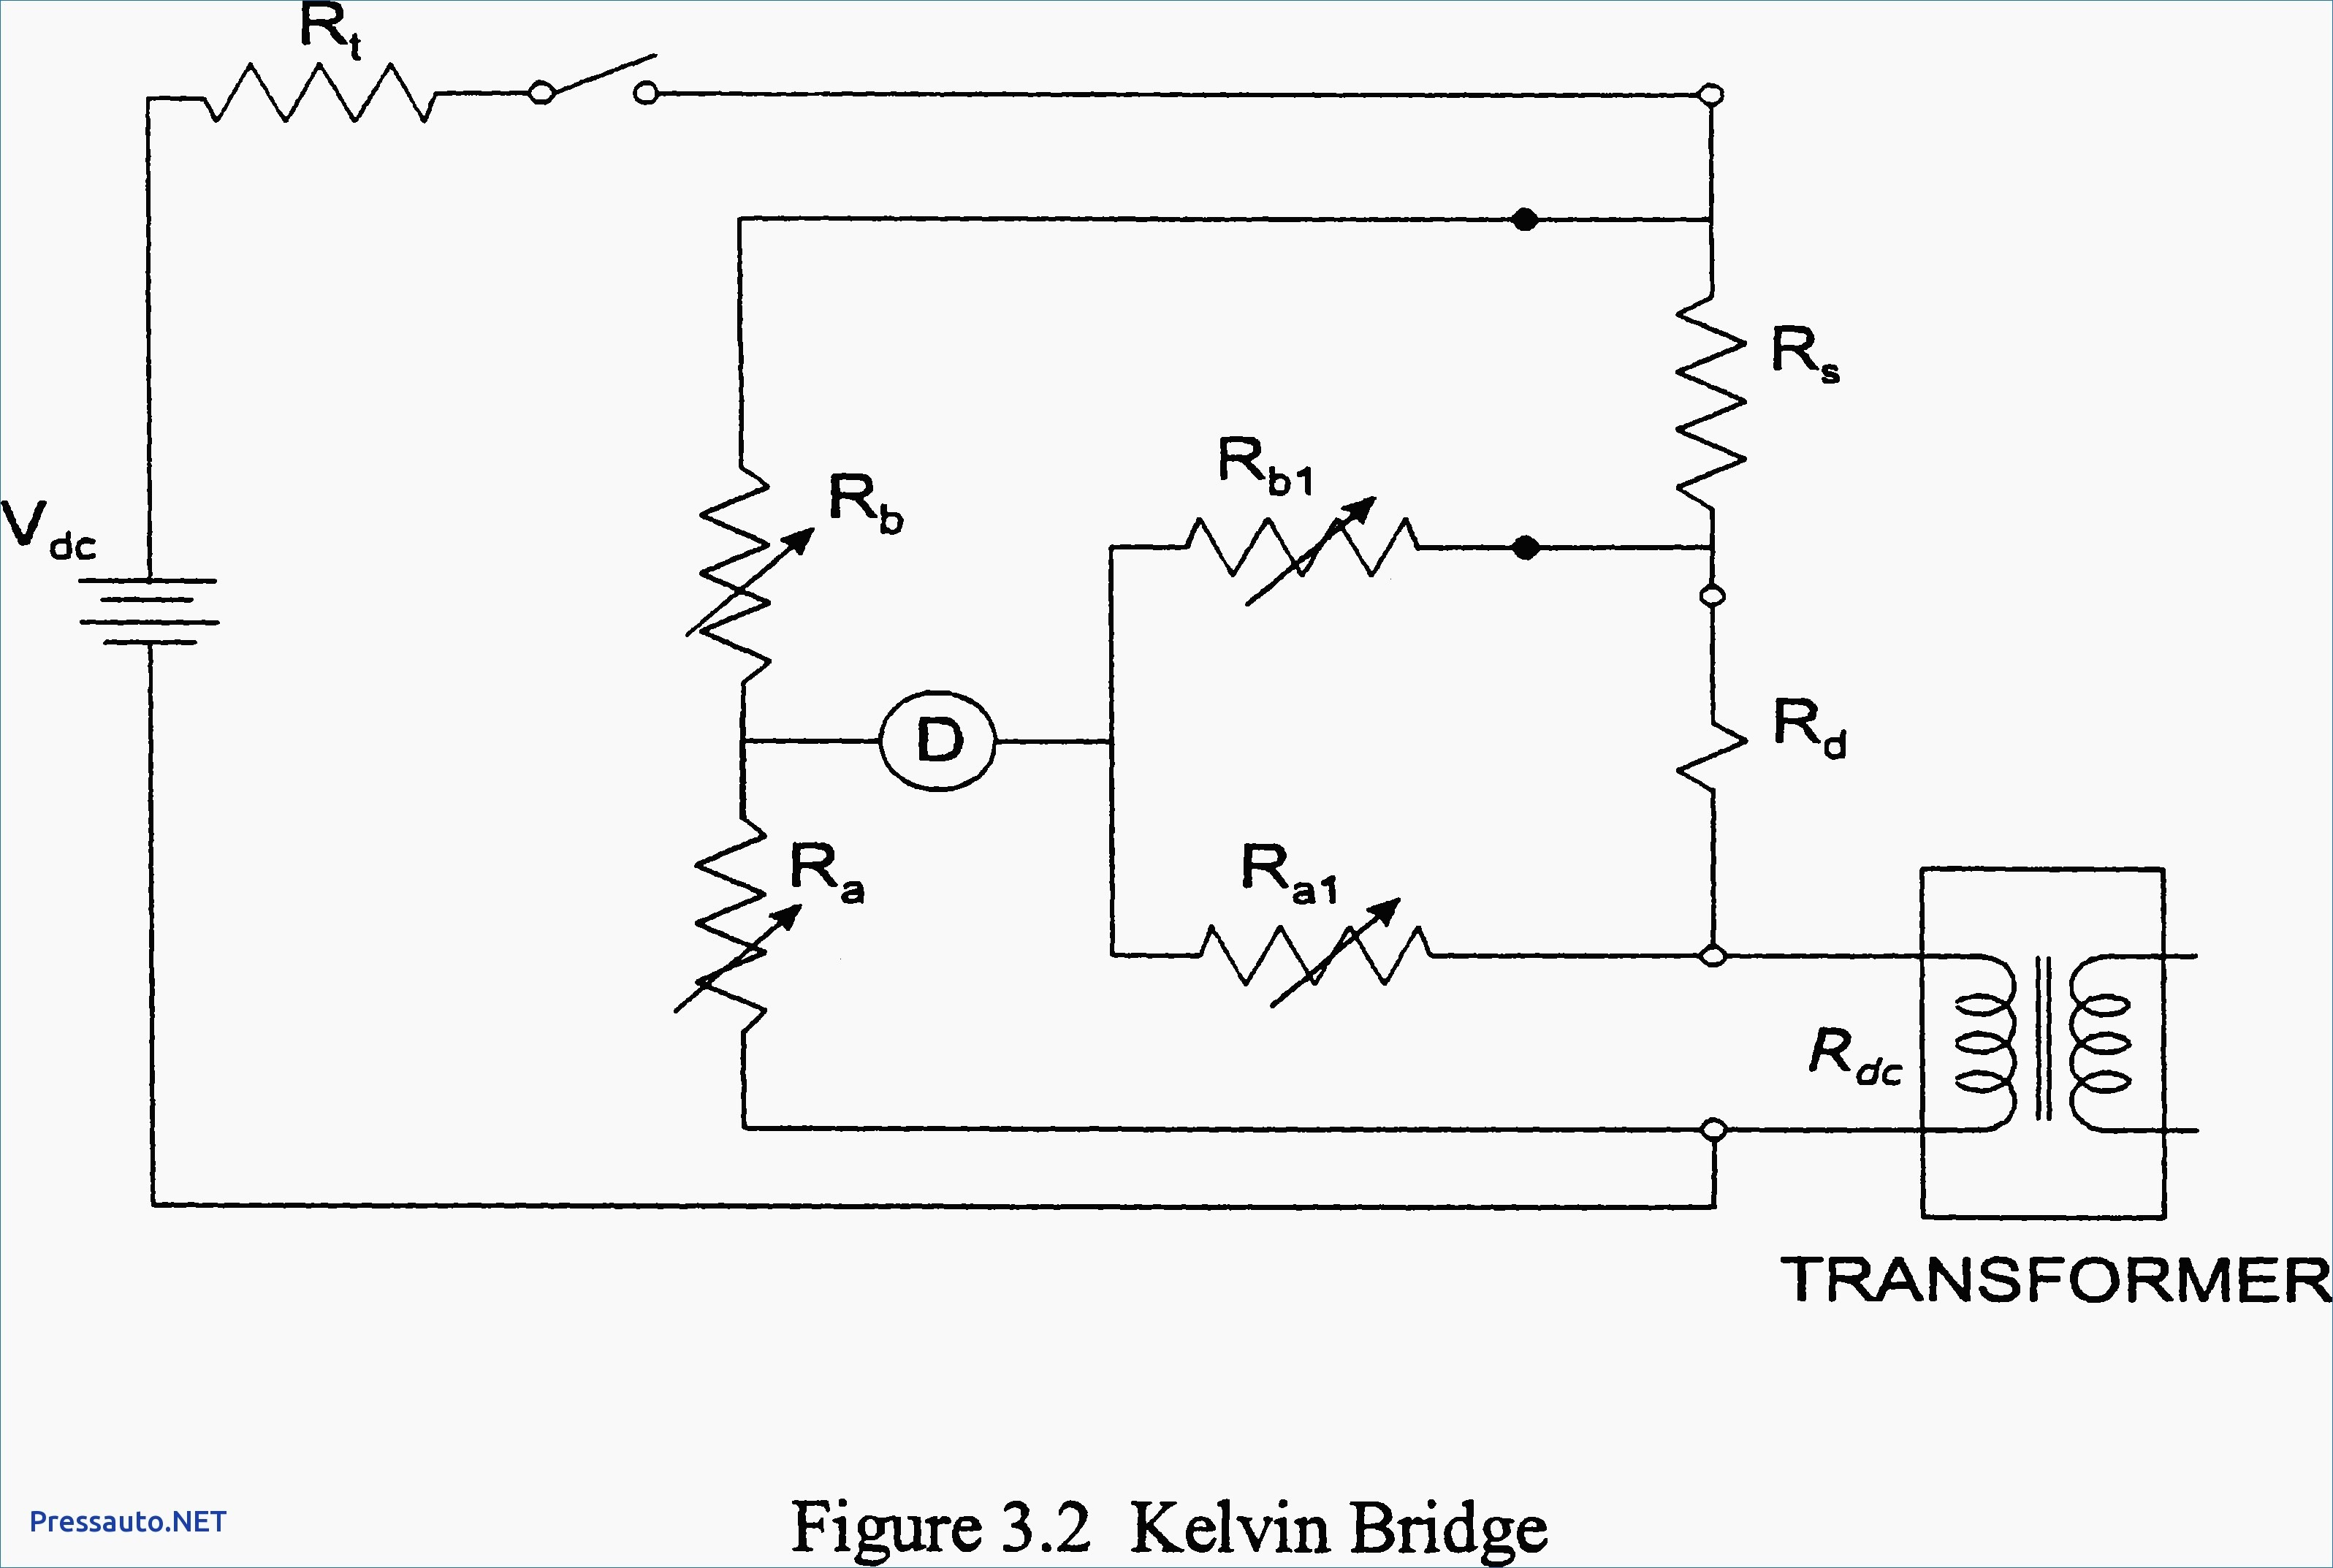 3 Phase Transformer Wiring Diagram Copy Three Phase Transformer Wiring Diagram Gooddy org Fair for In